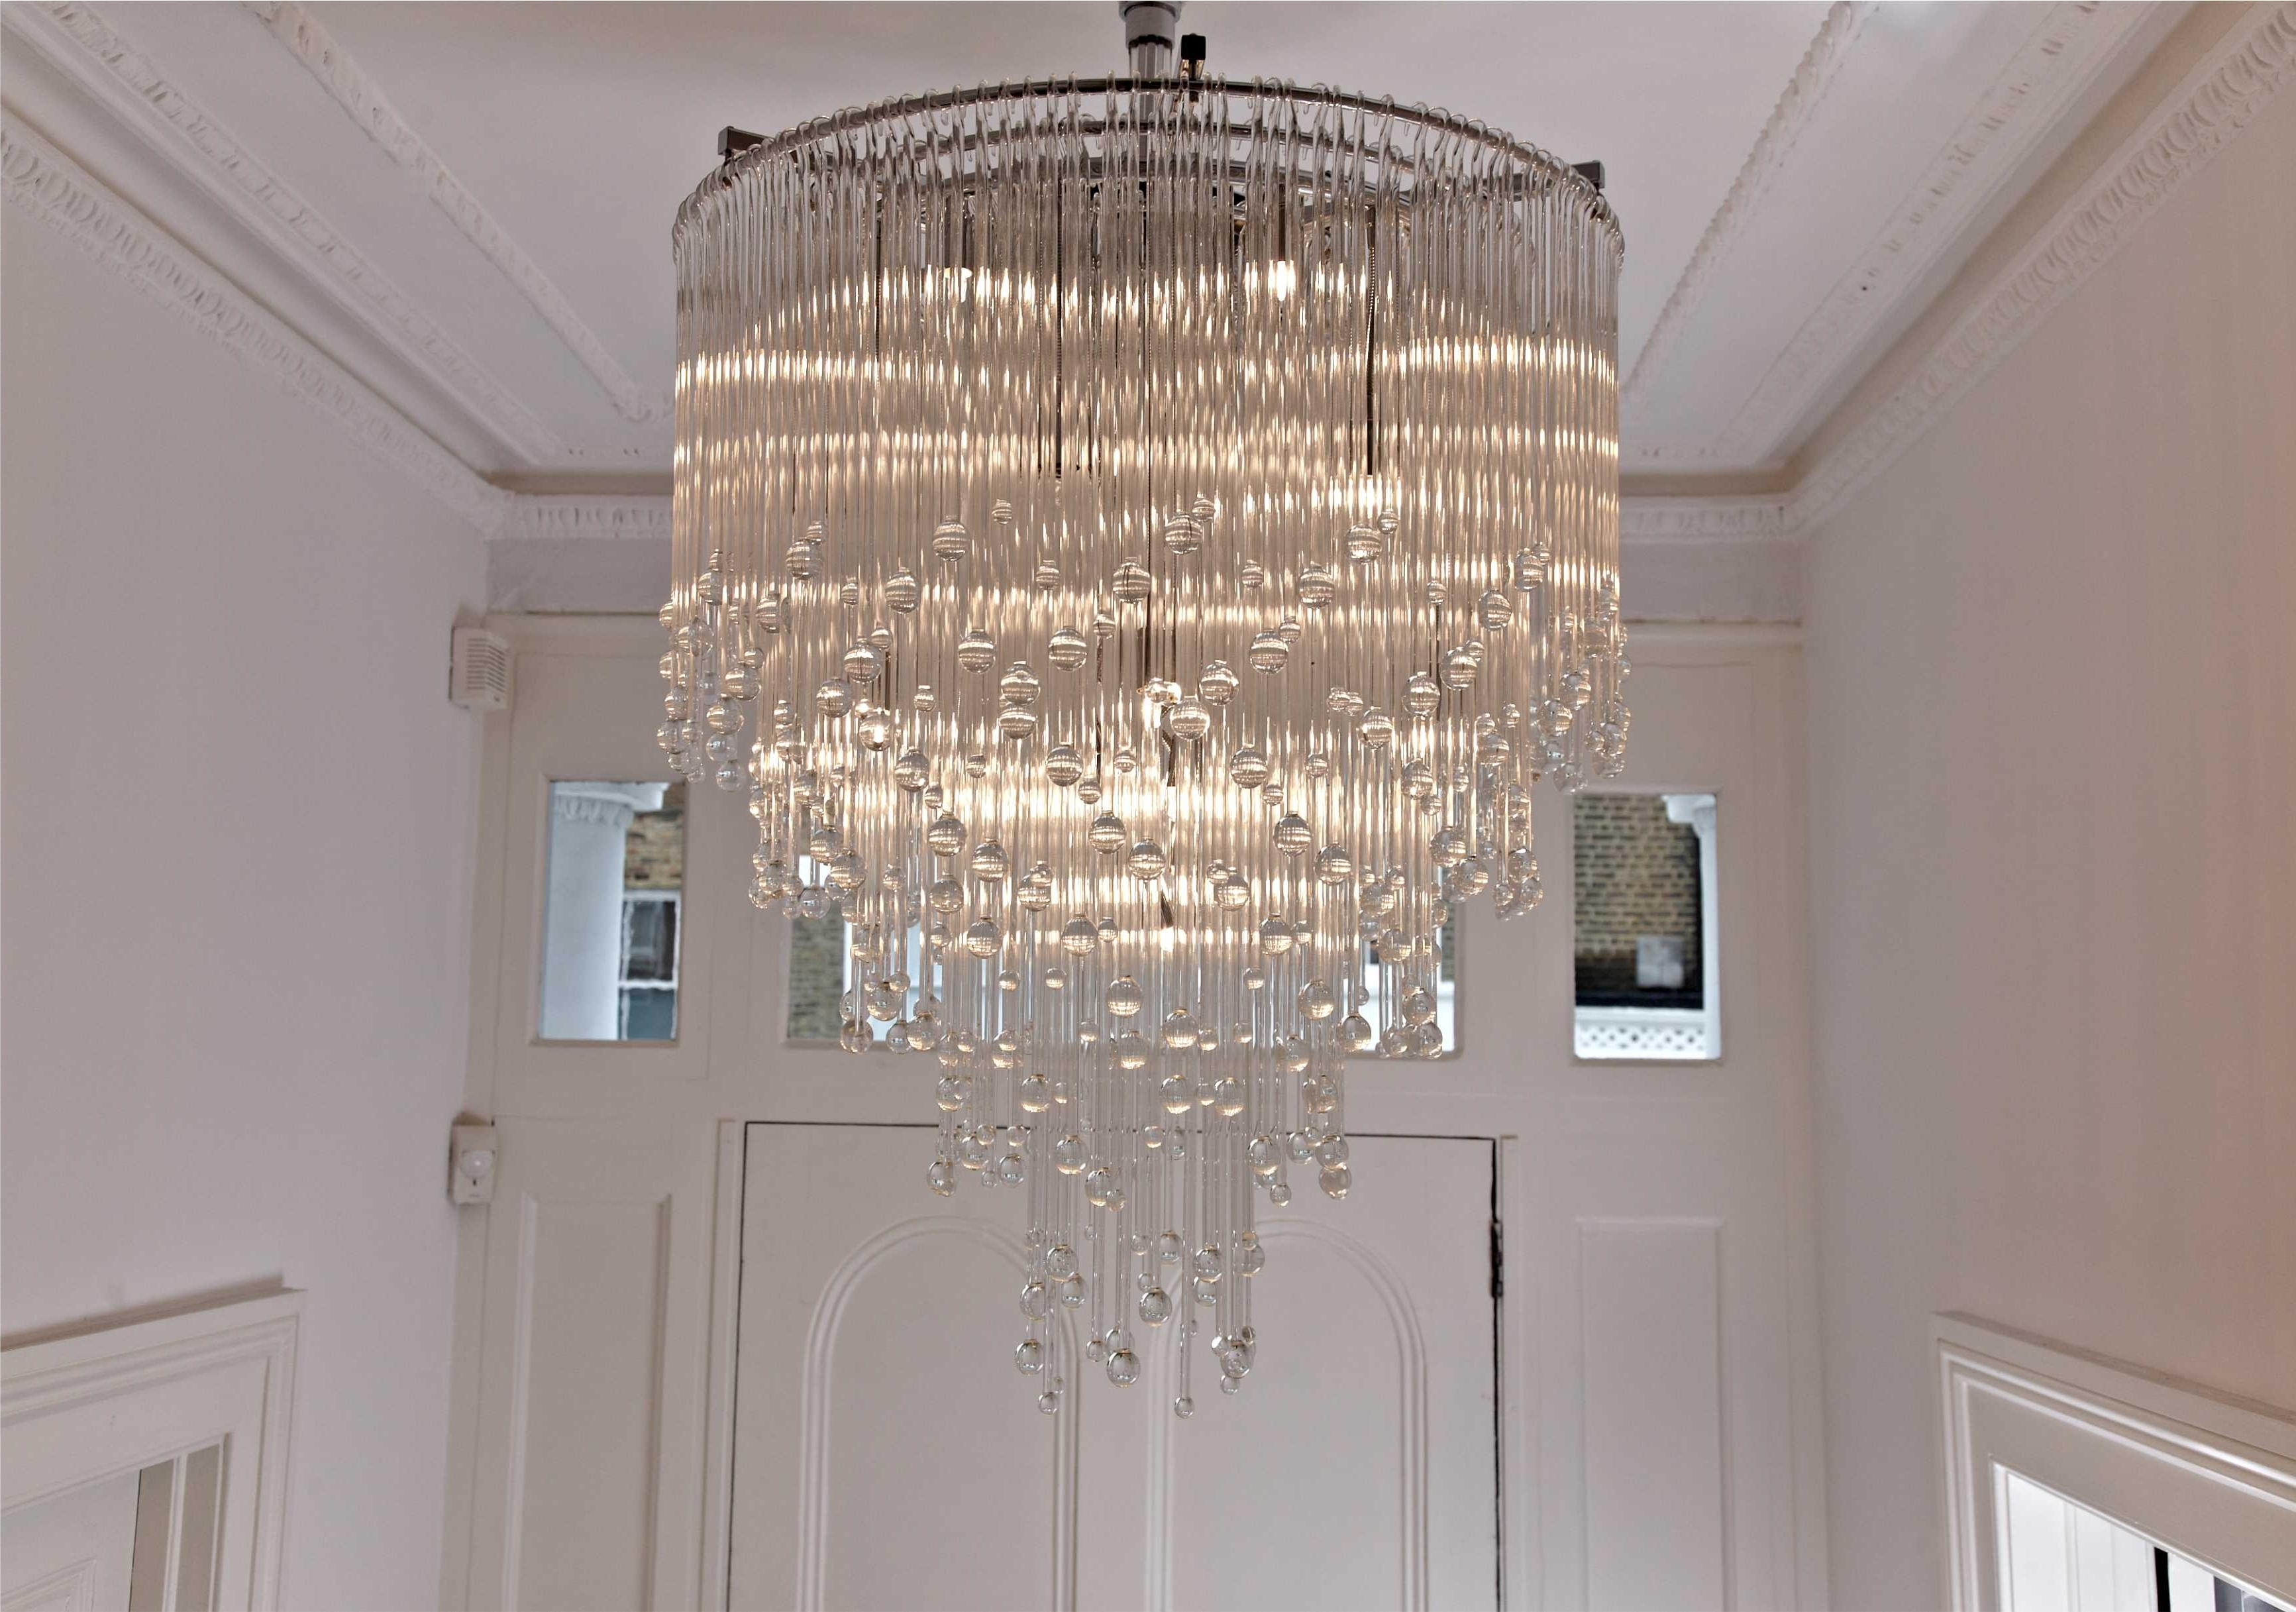 Contemporary Large Chandeliers With Regard To Most Recently Released Contemporary Bathroom Chandeliers On With Hd Resolution 3466X (View 2 of 15)